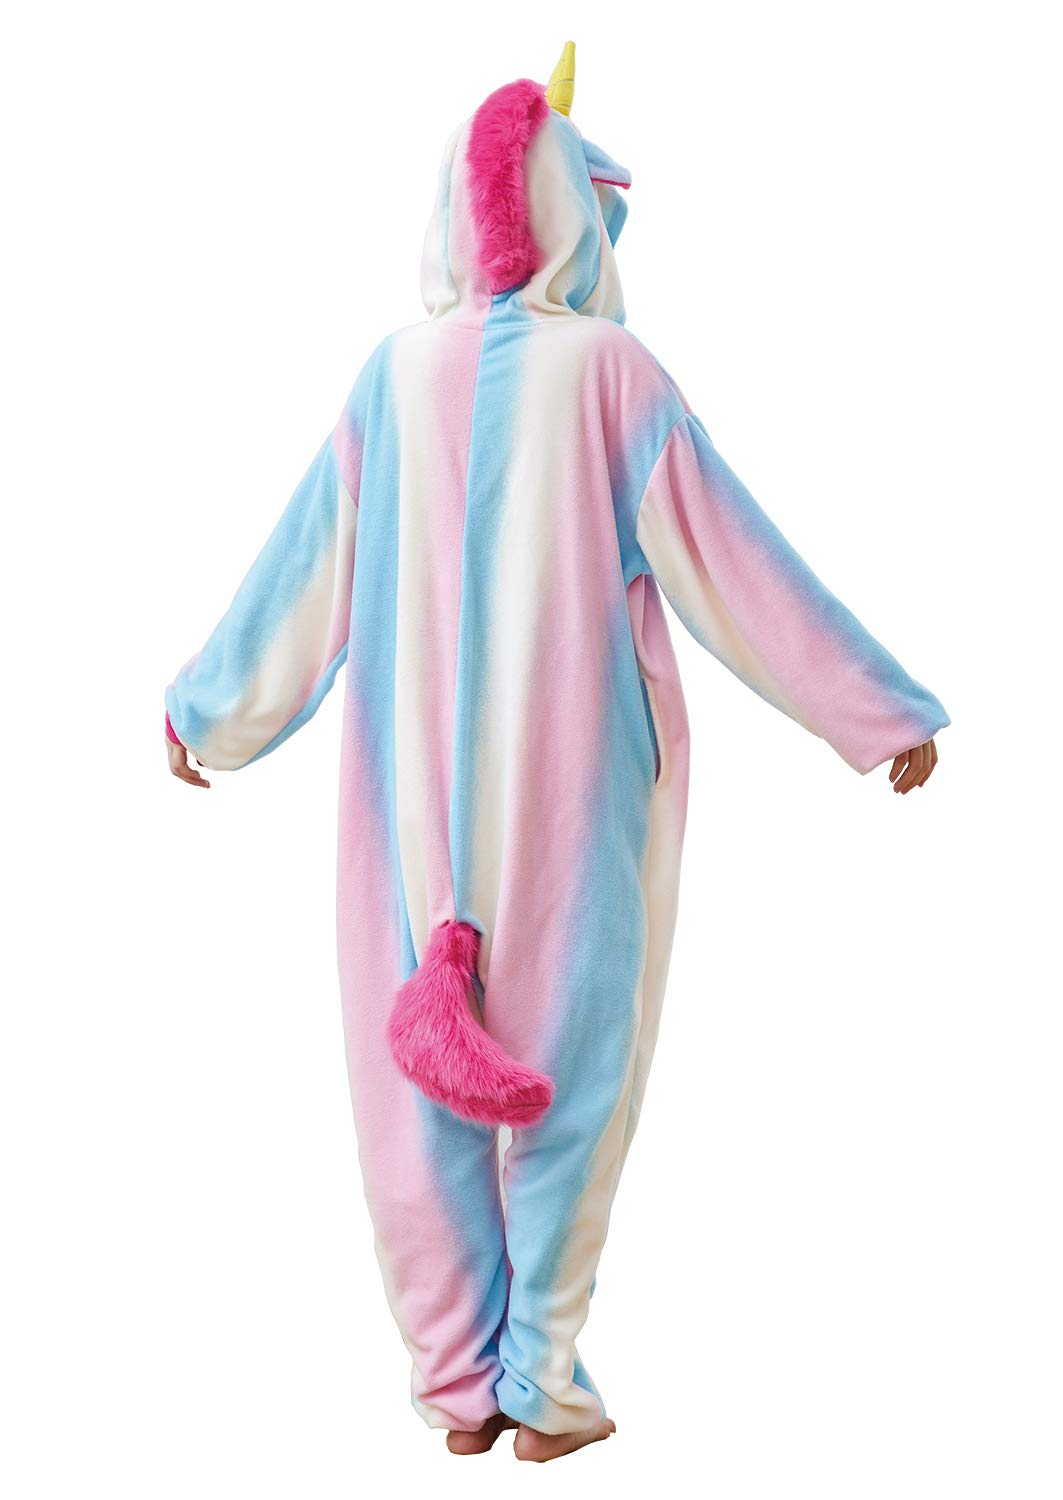 Unisex Adult Cute Animal Pajamas Onesies,One-Piece Cosplay Costume Jumpsuit Outfit XL by Mybei (Image #4)